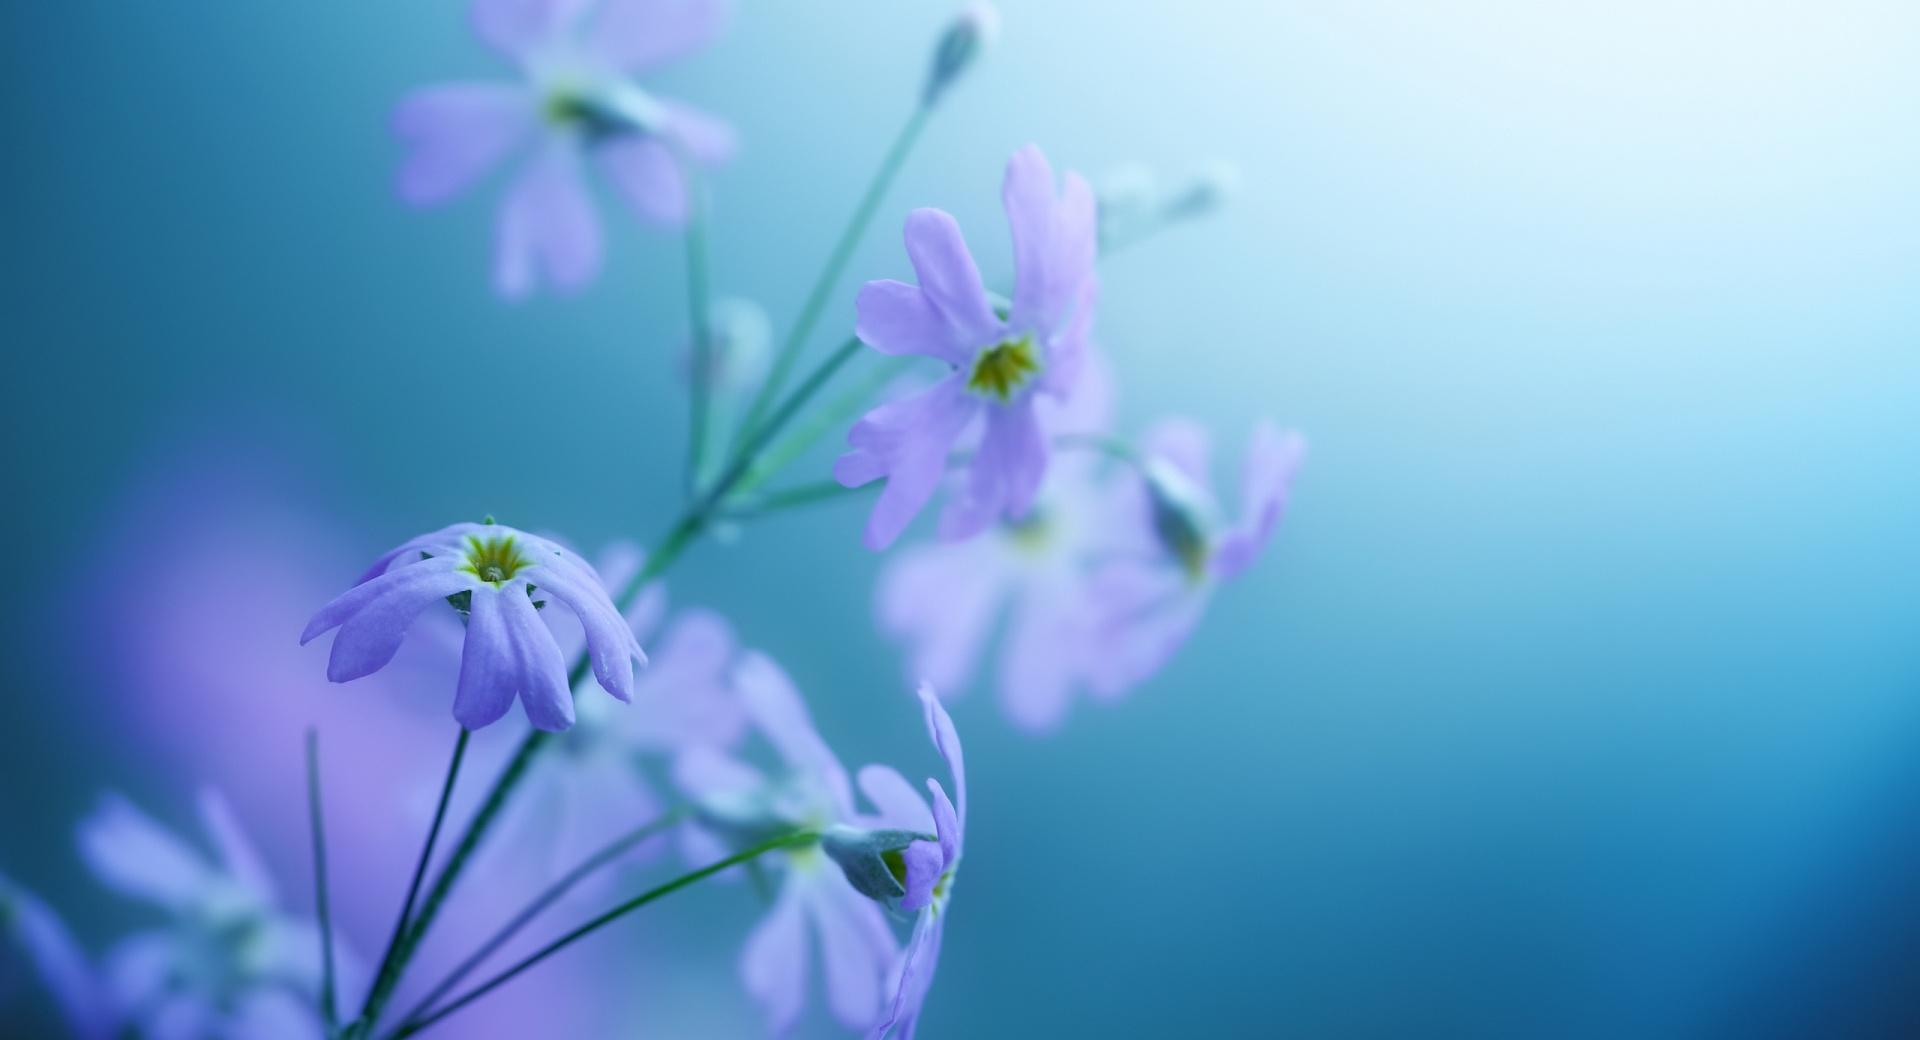 Delicate Violet Flowers wallpapers HD quality